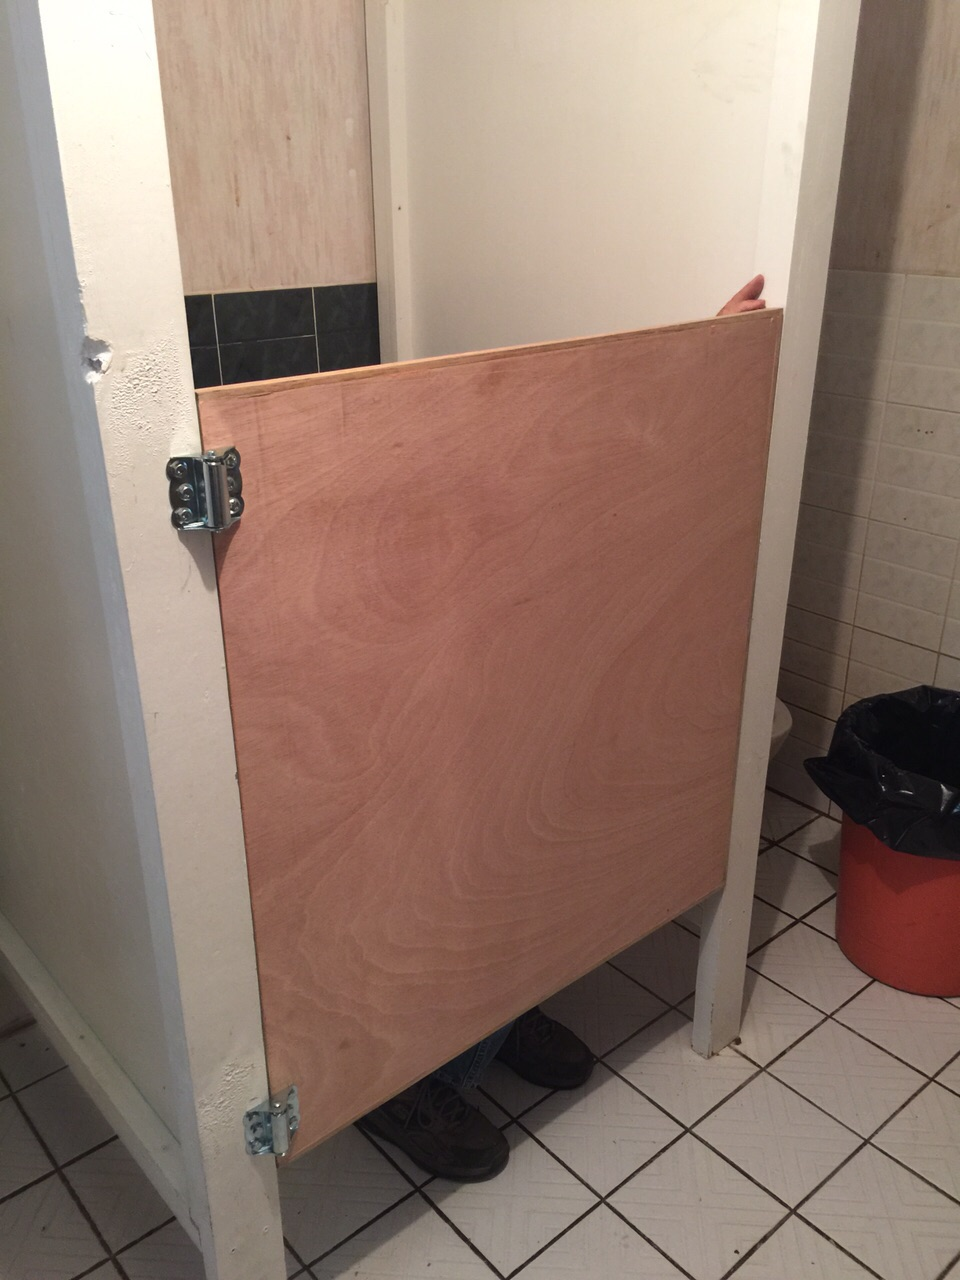 The government wnted these half-doors on all toilets so Bob, Larry & our boys are constructing and installing them